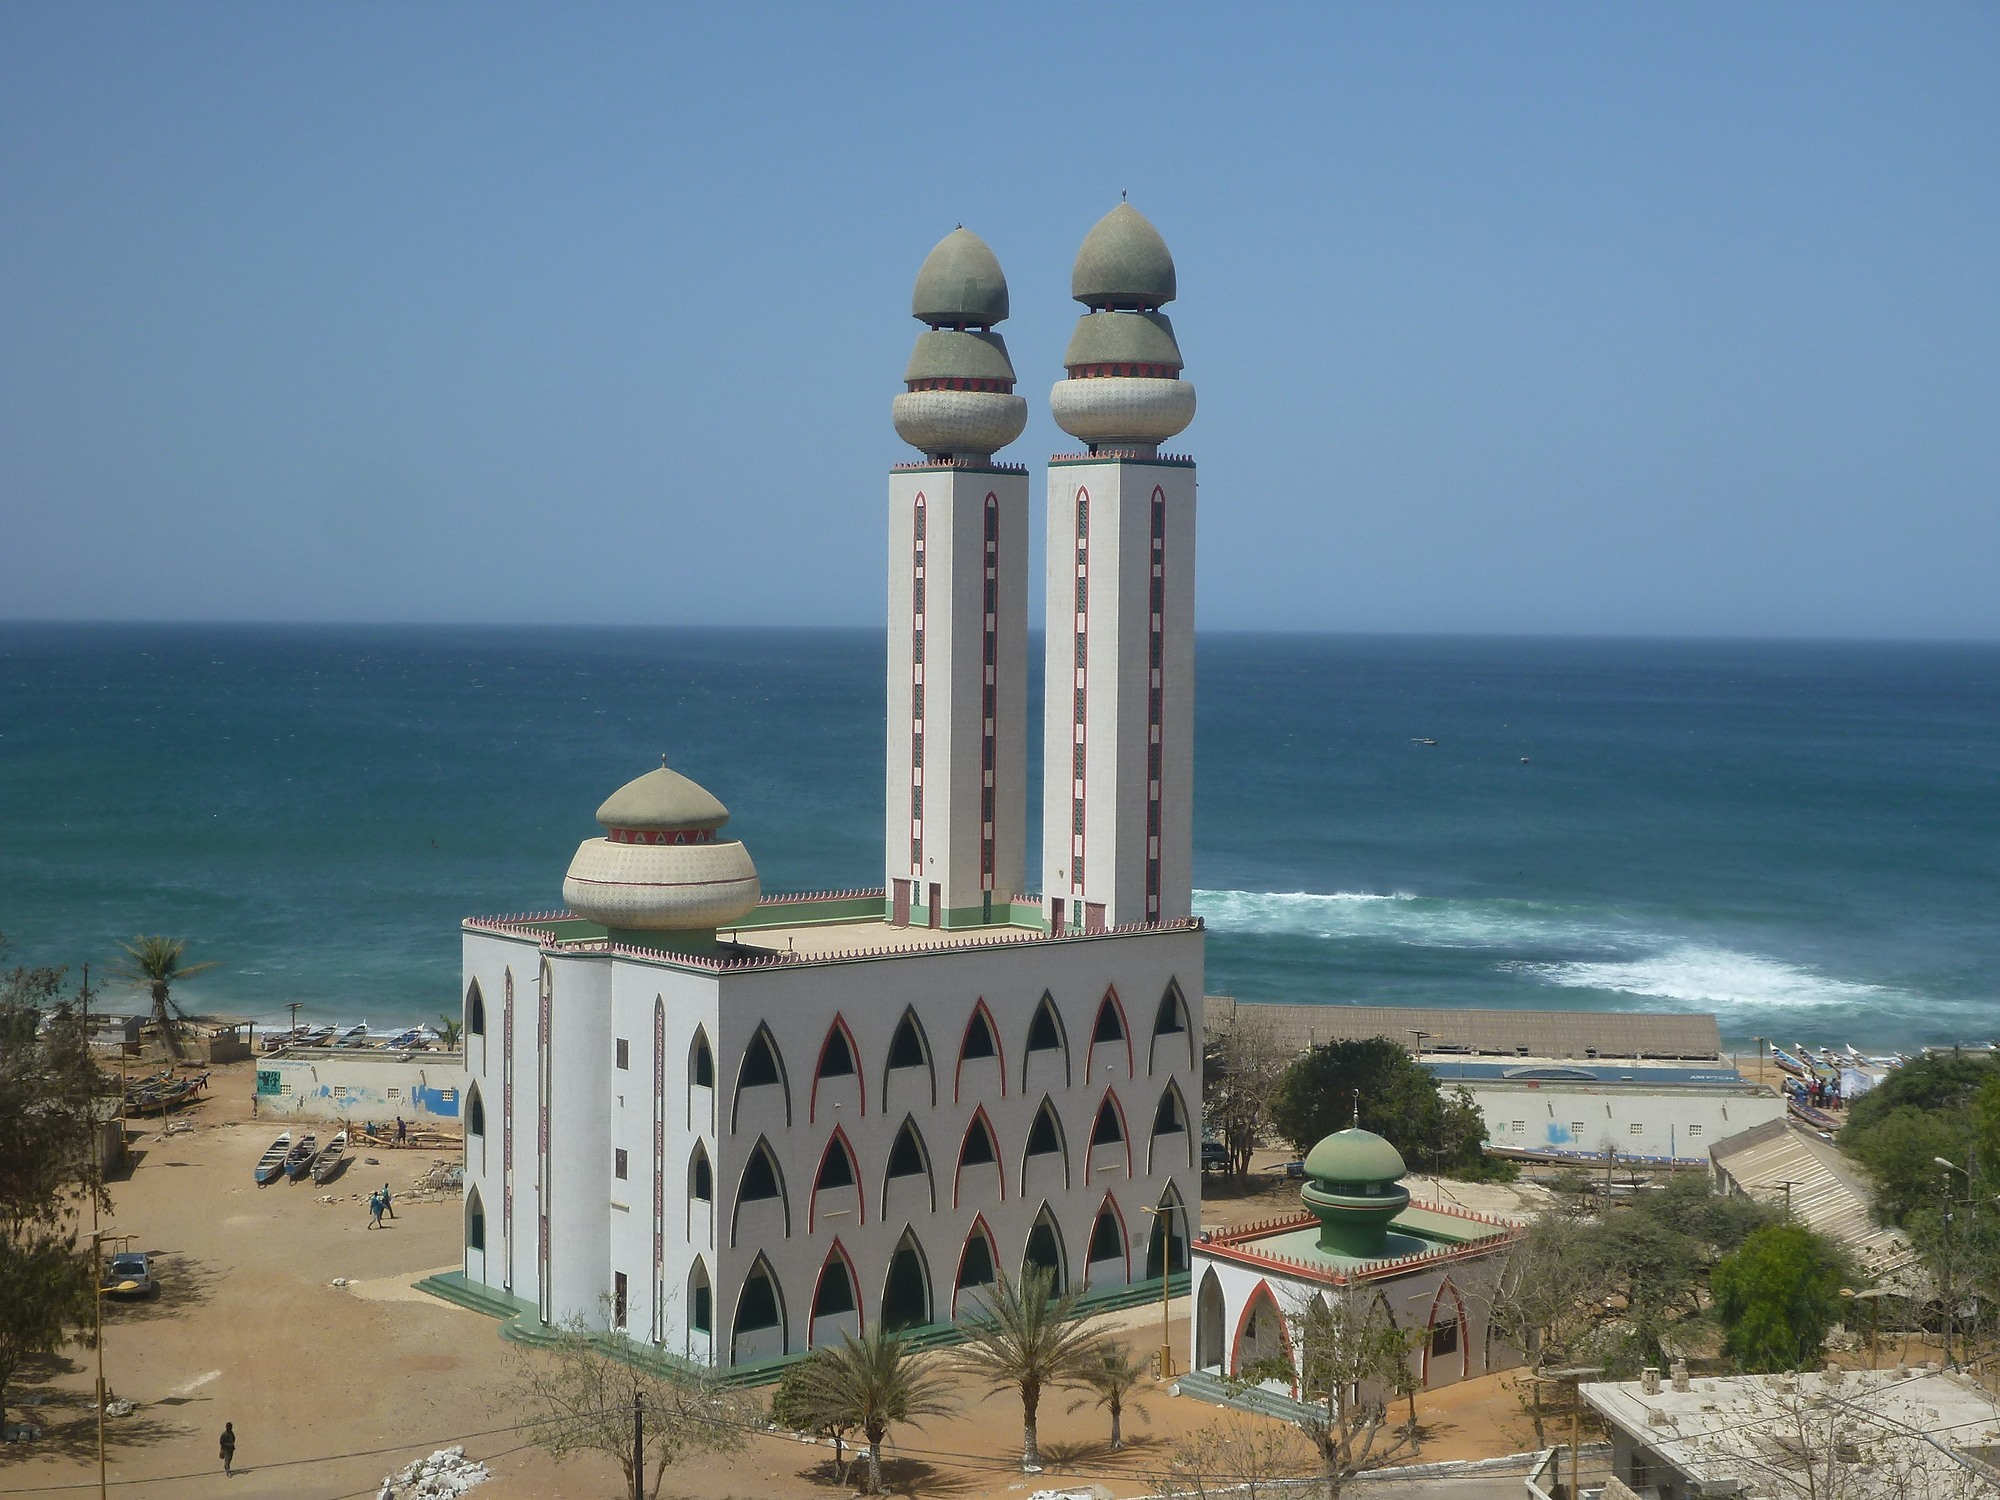 The Atlantic Mosque (Mosque of the Divinity) in Dakar, Senegal